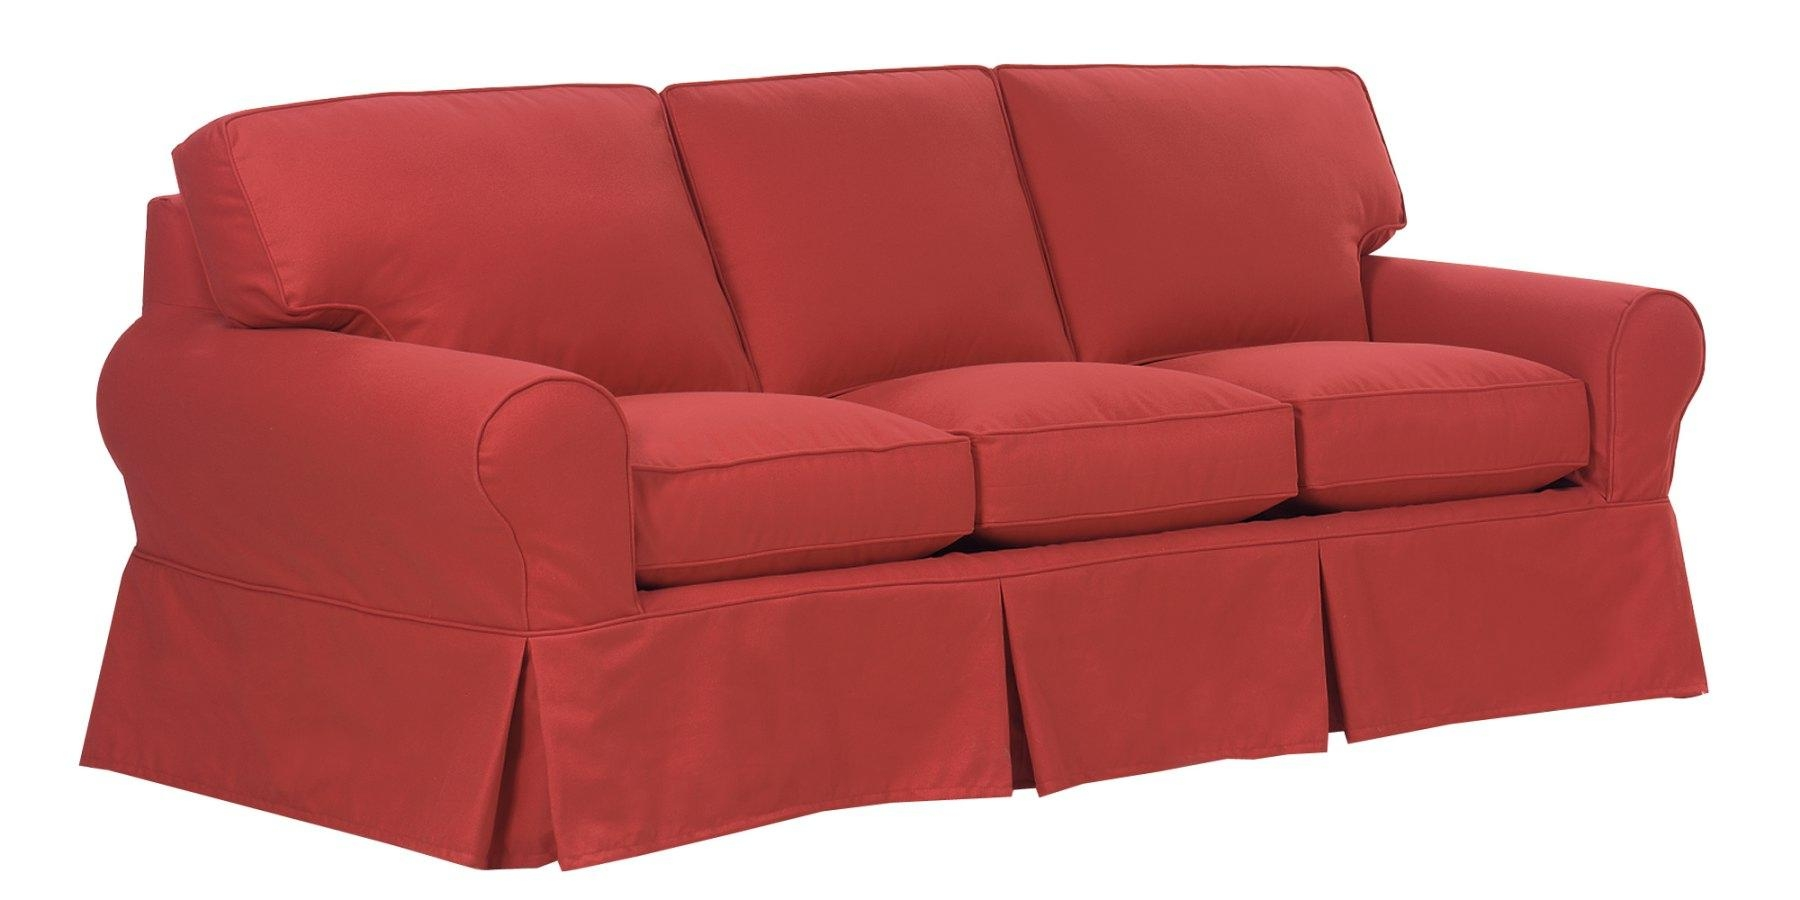 Chloe Slipcovered Sleeper Sofa | Club Furniture Inside Slipcovers For Sleeper Sofas (Image 3 of 20)